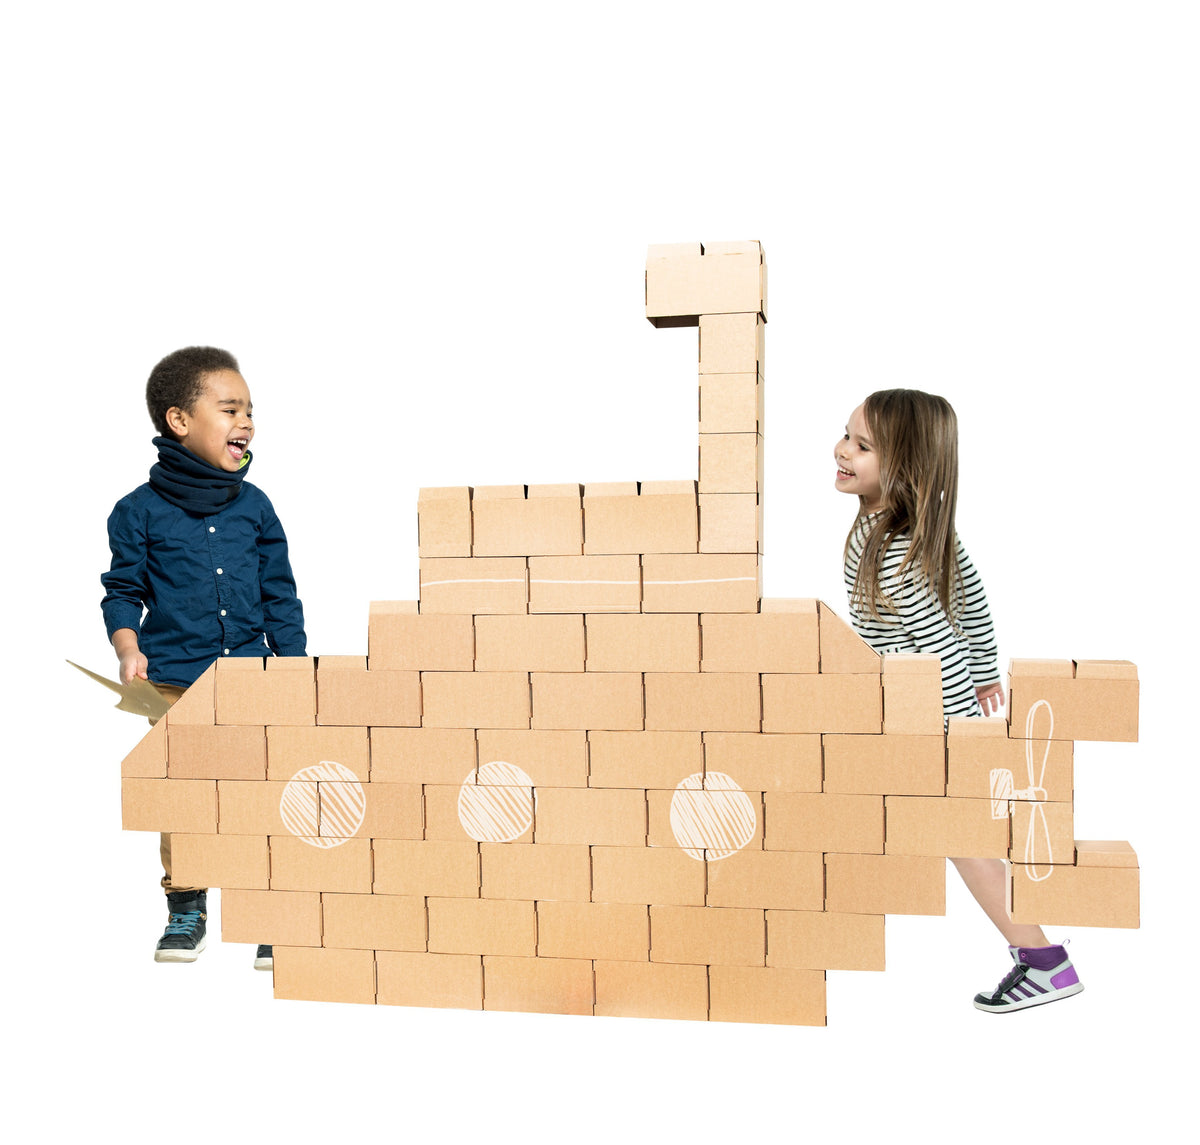 60 XXL Cardboard Bricks Set for Kids - GIGI Bloks